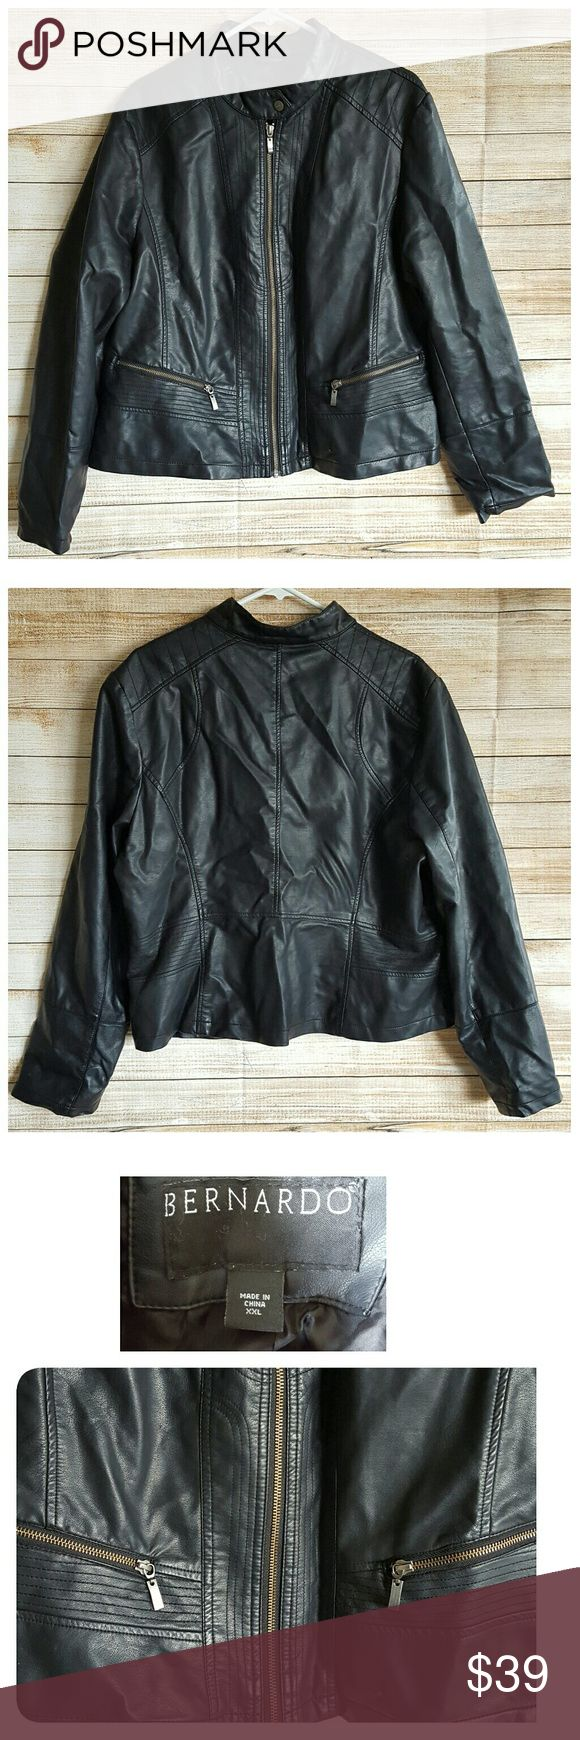 Bernardo black faux leather jacket vegan bomber 2X Beautiful condition with no flaws Bernardo Jackets & Coats